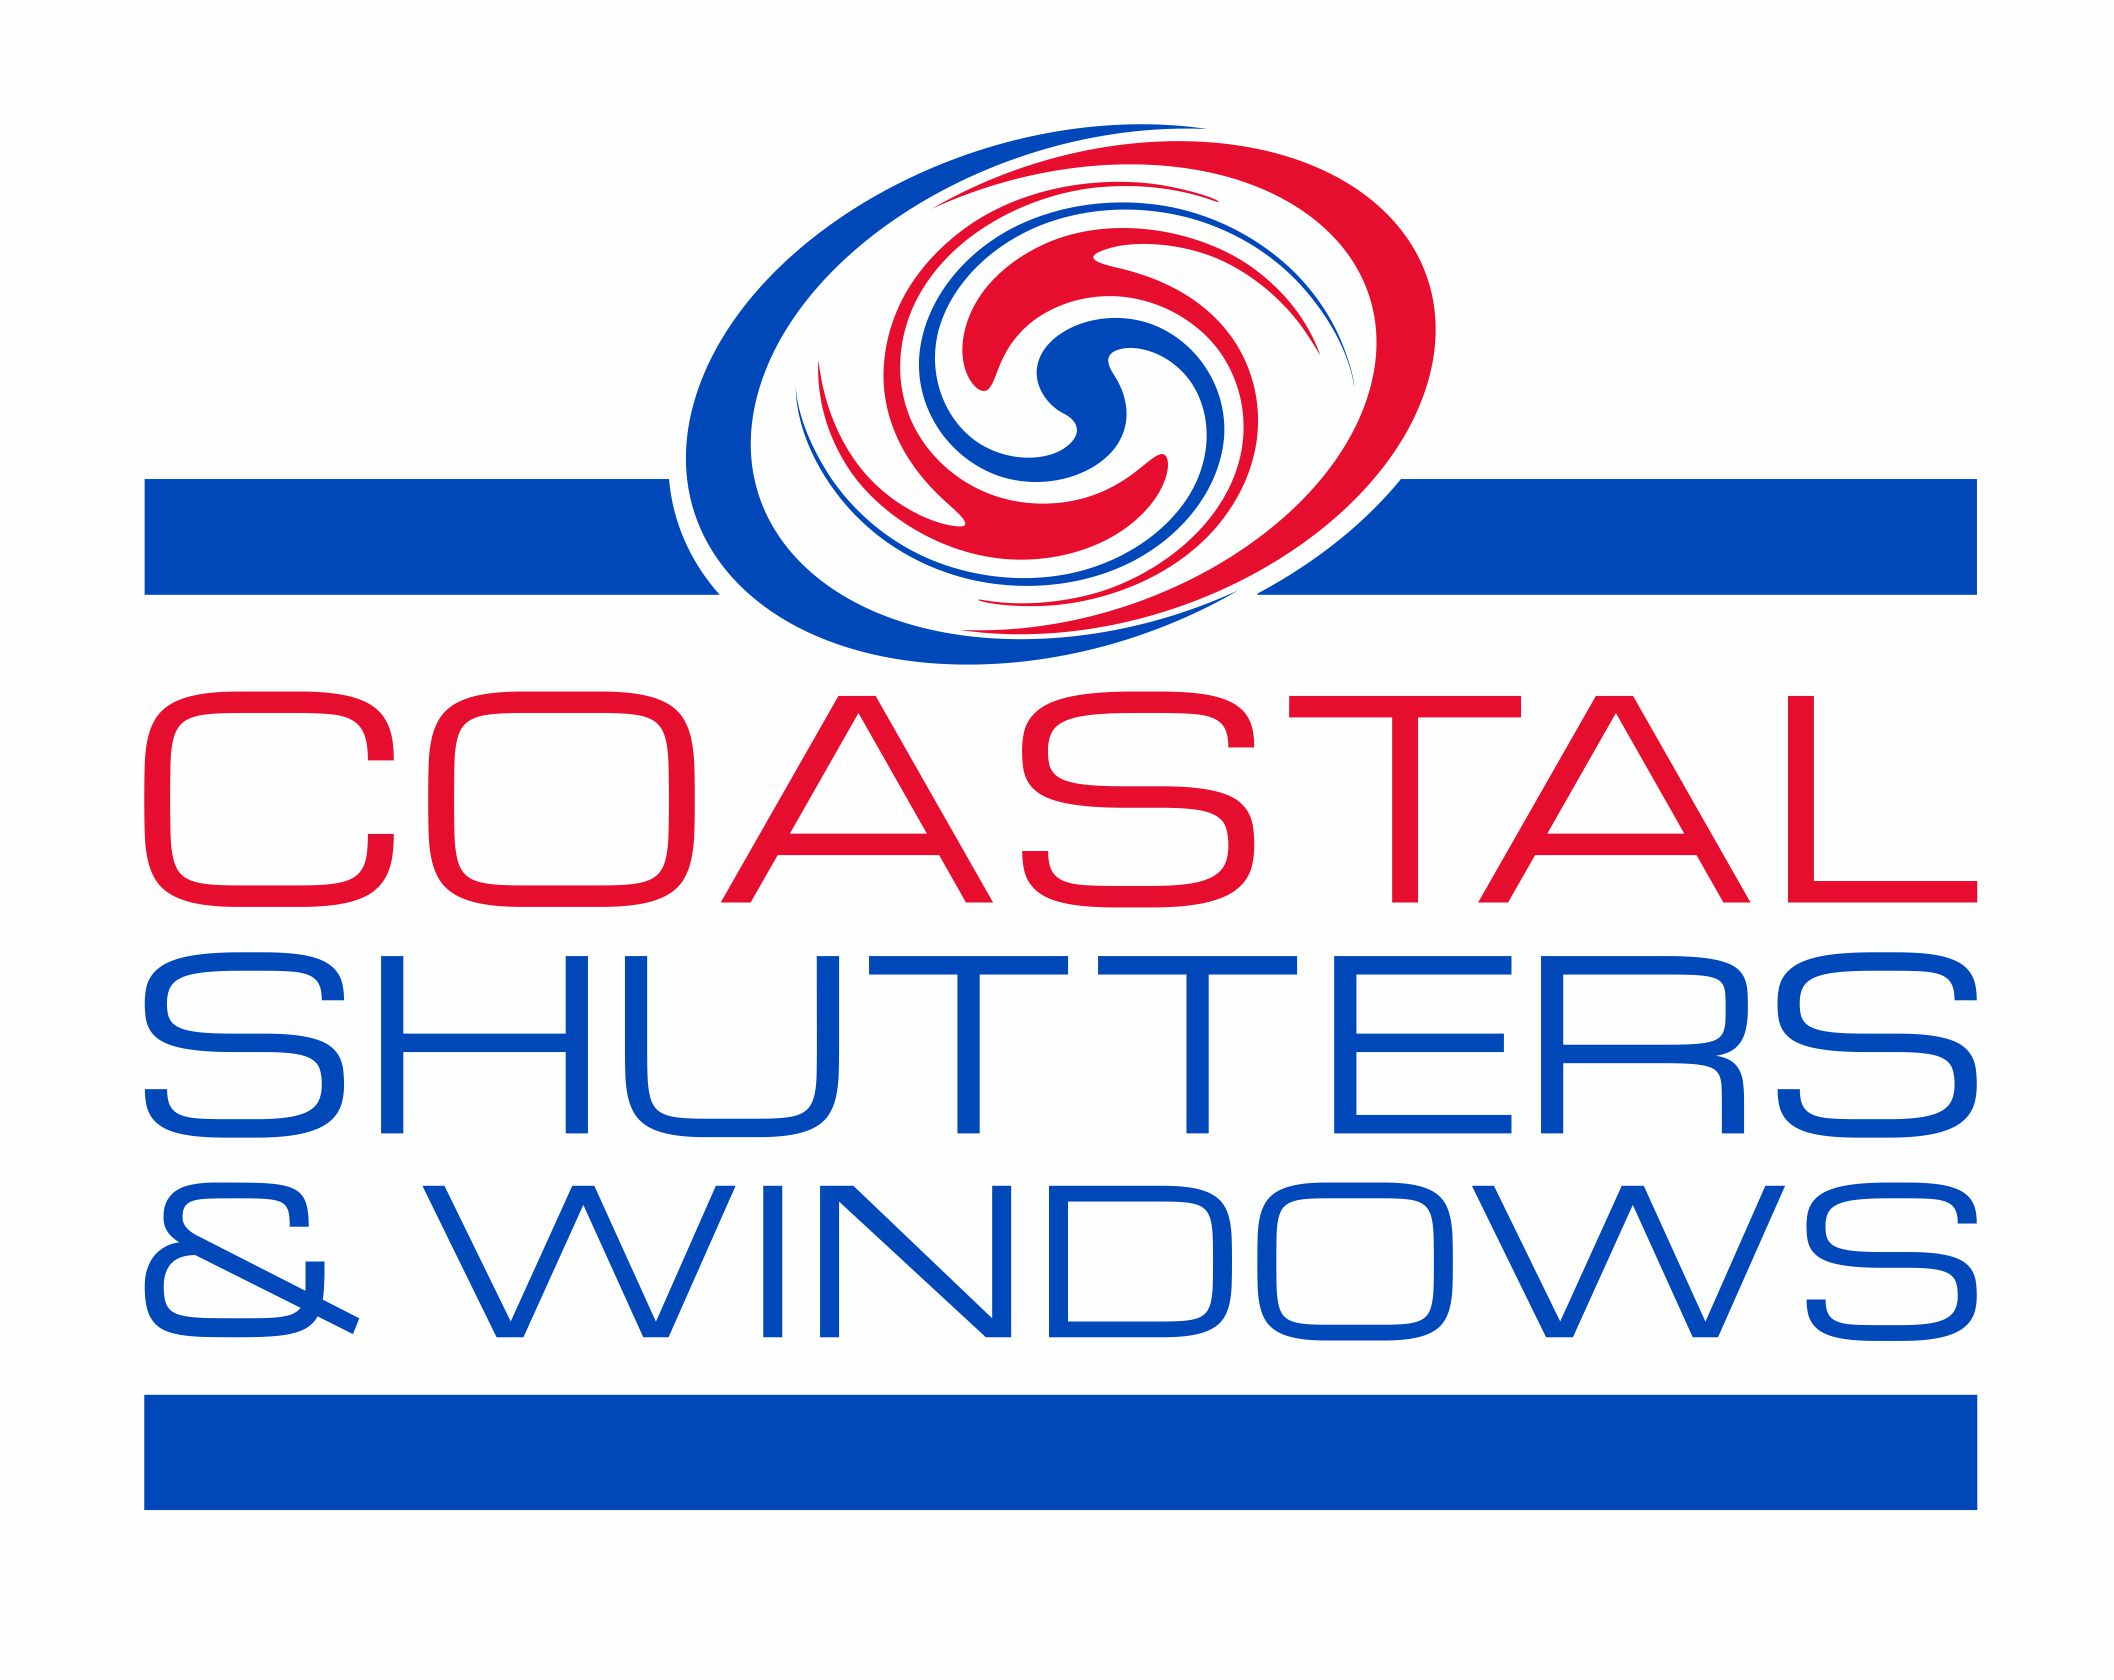 Coastal Shutters & Windows